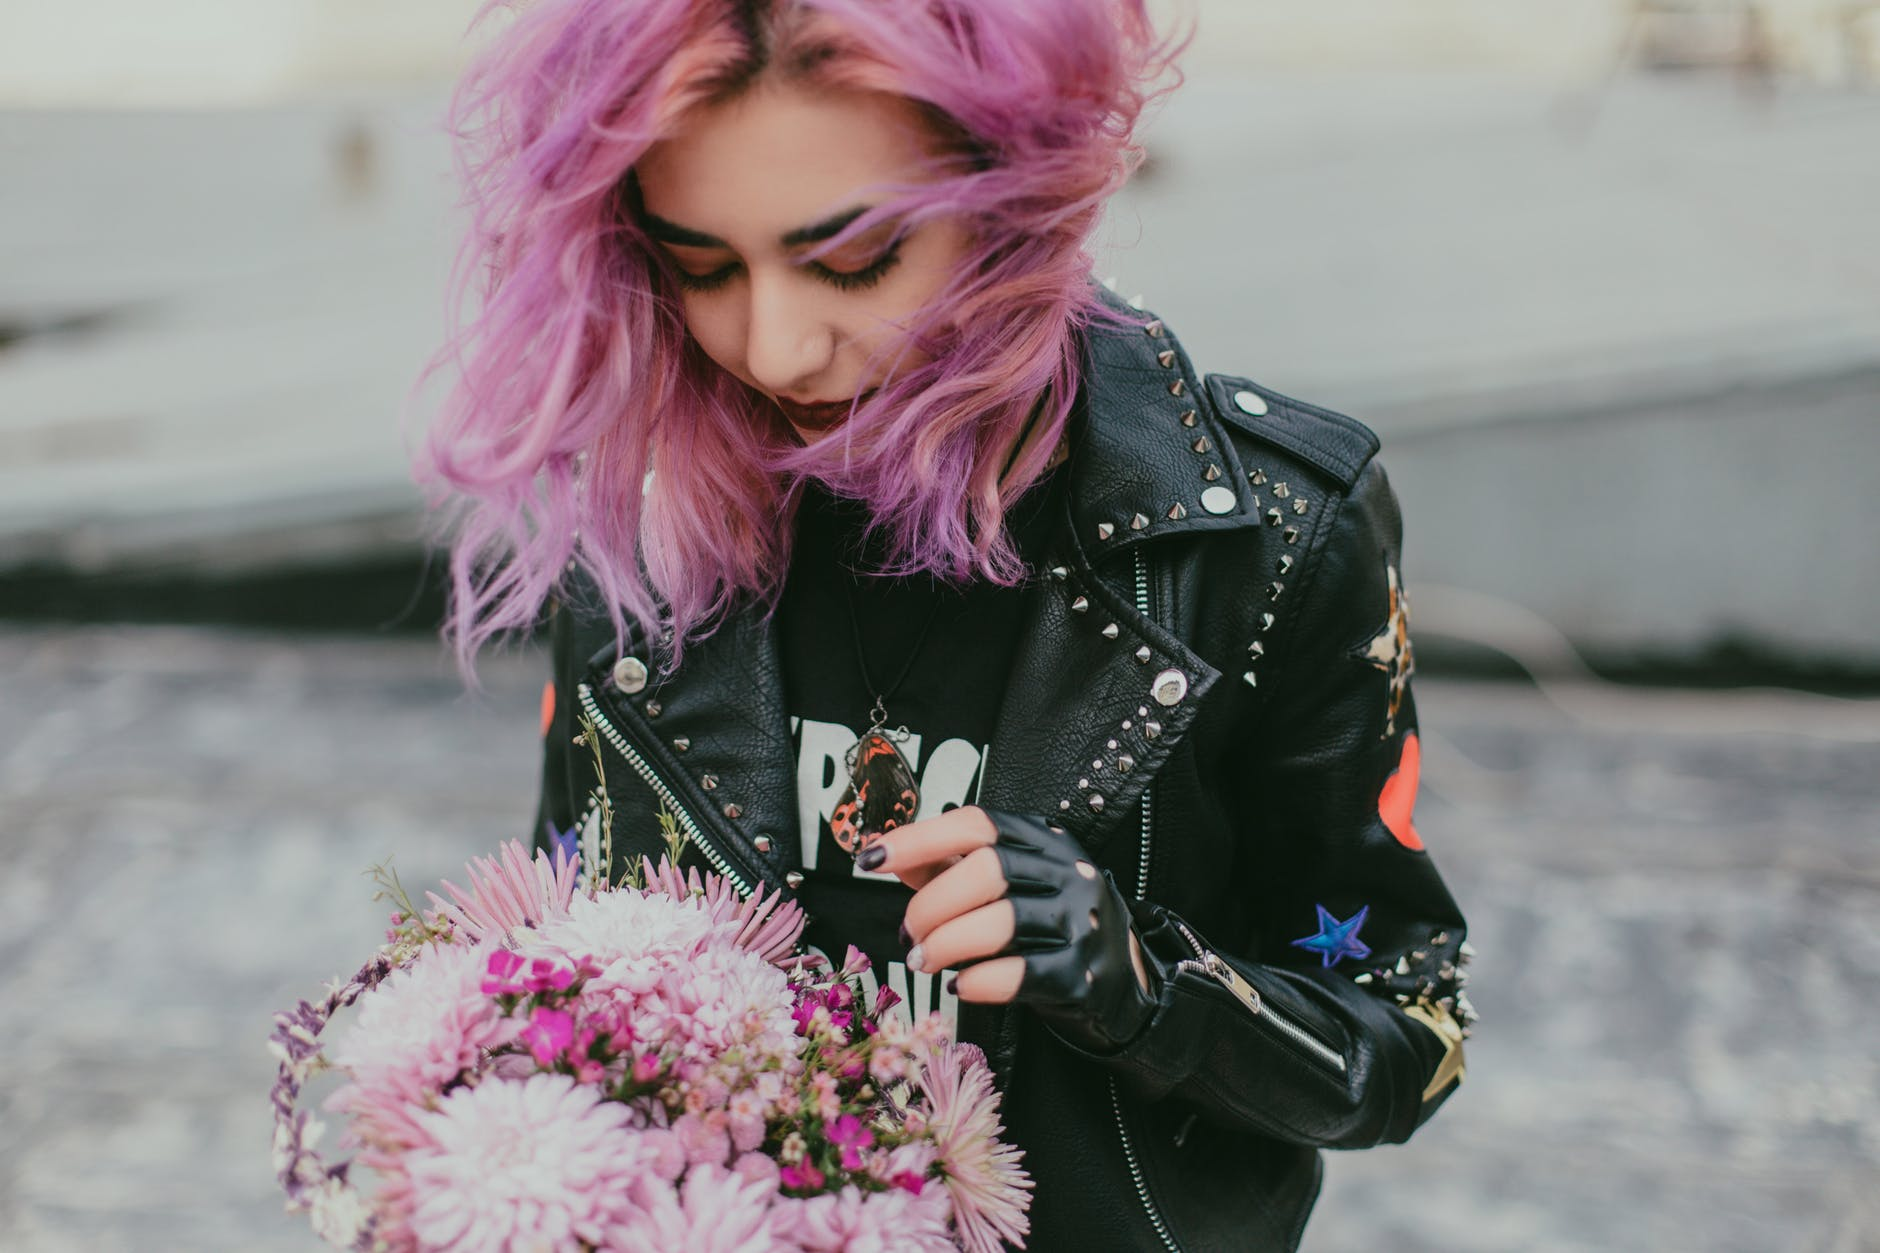 Hair Dyeing Debunking 10 Myths with Facts